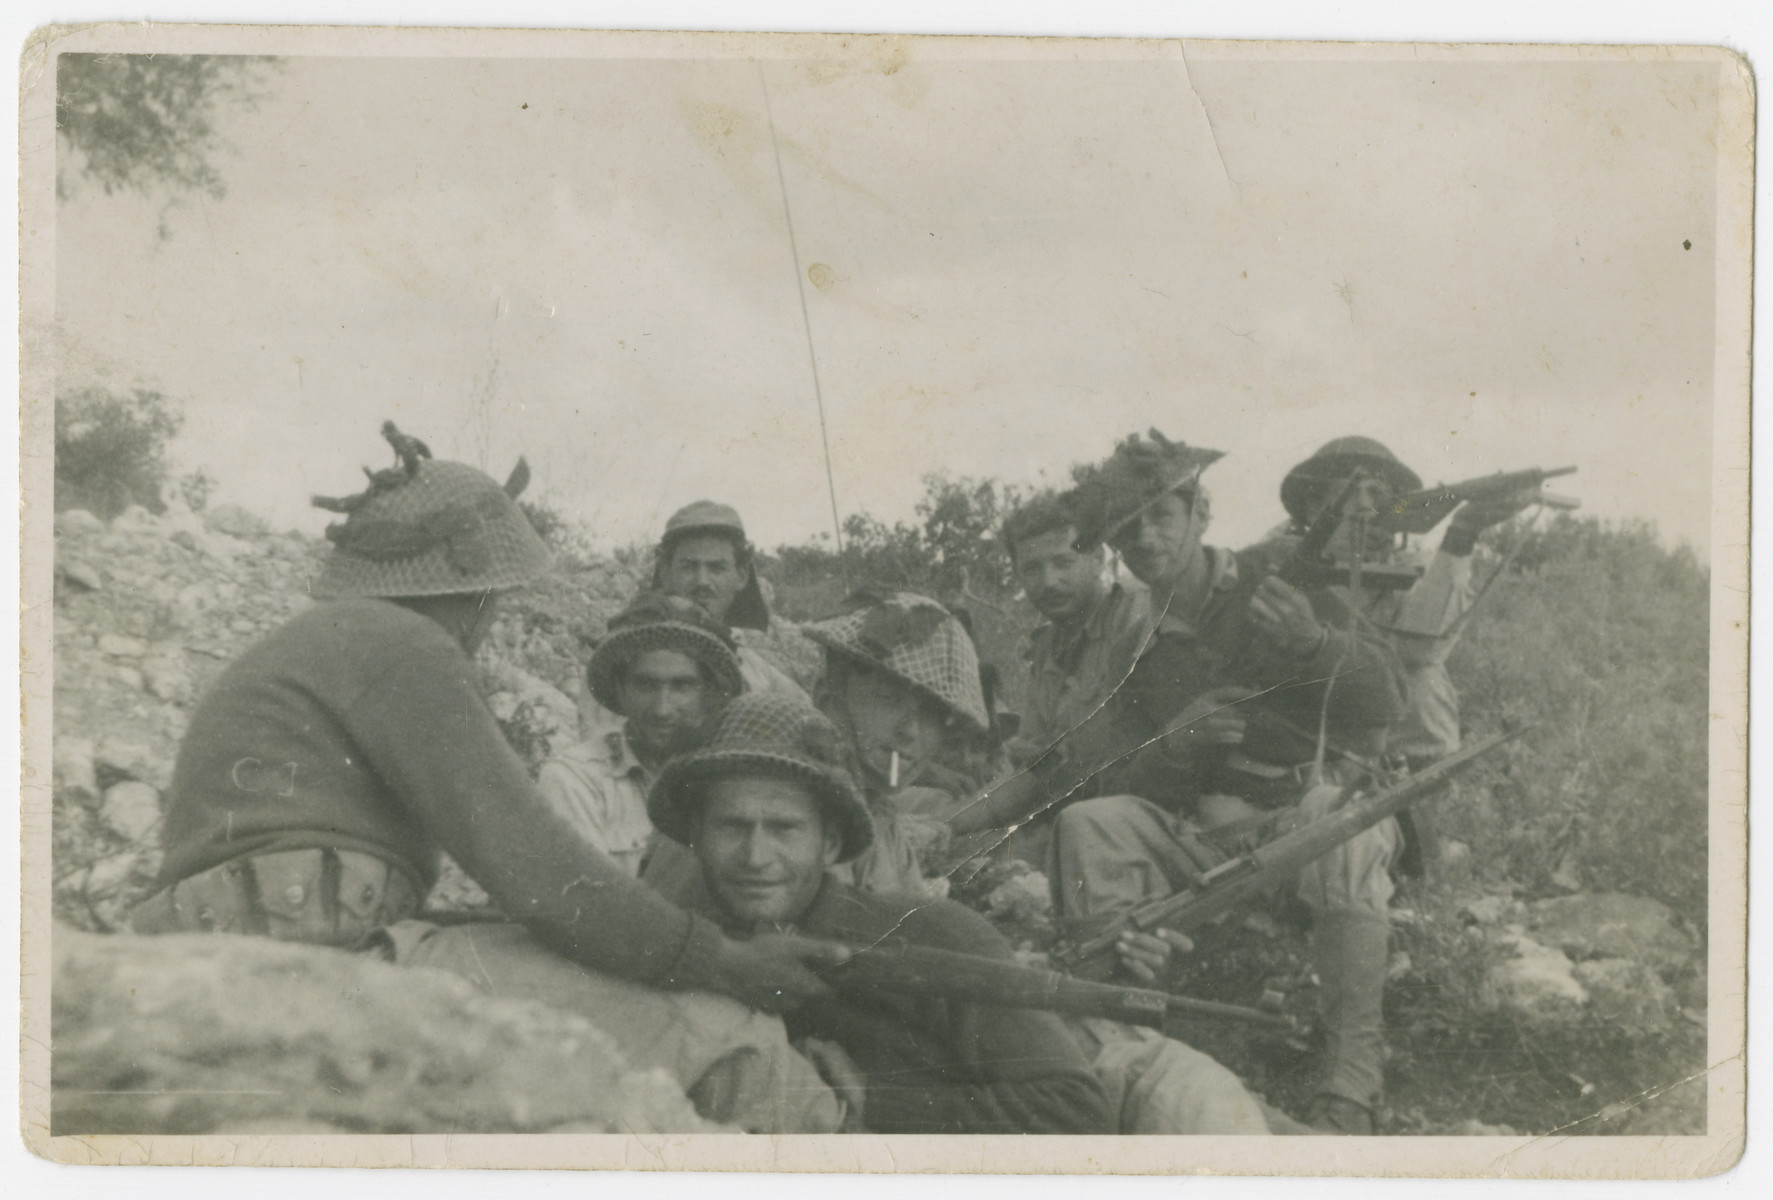 Lt. Yehuda Bielski (right, sitting on a rock) leads a unit of Israeli soldiers during the War of Independence.